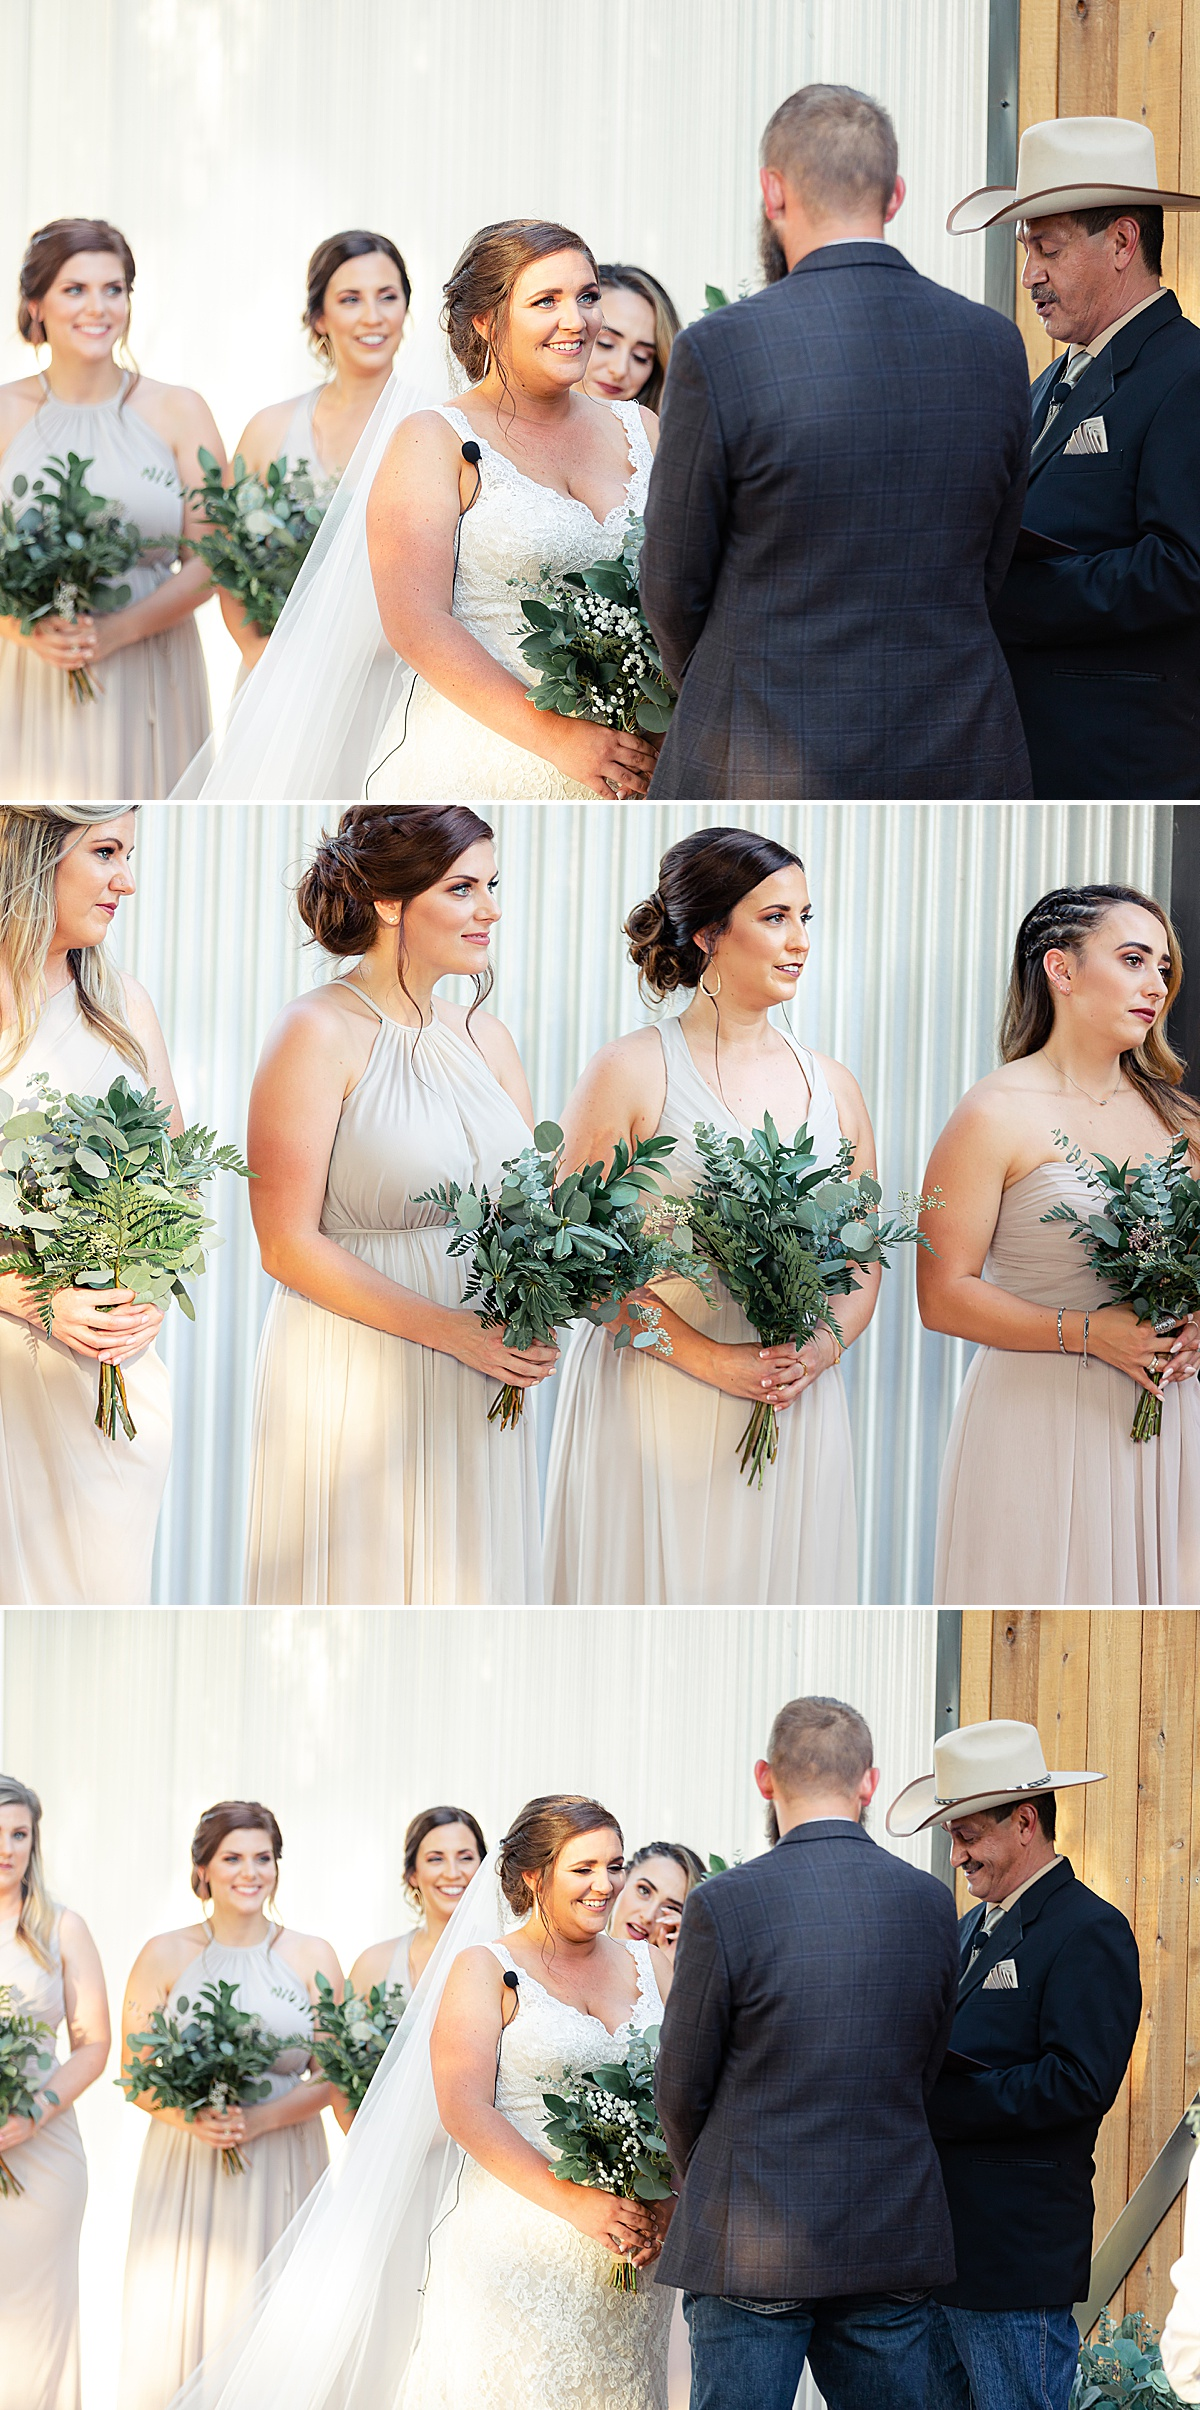 Rustic-Texas-Wedding-Hollow-Creek-Ranch-Carly-Barton-Photography_0116.jpg